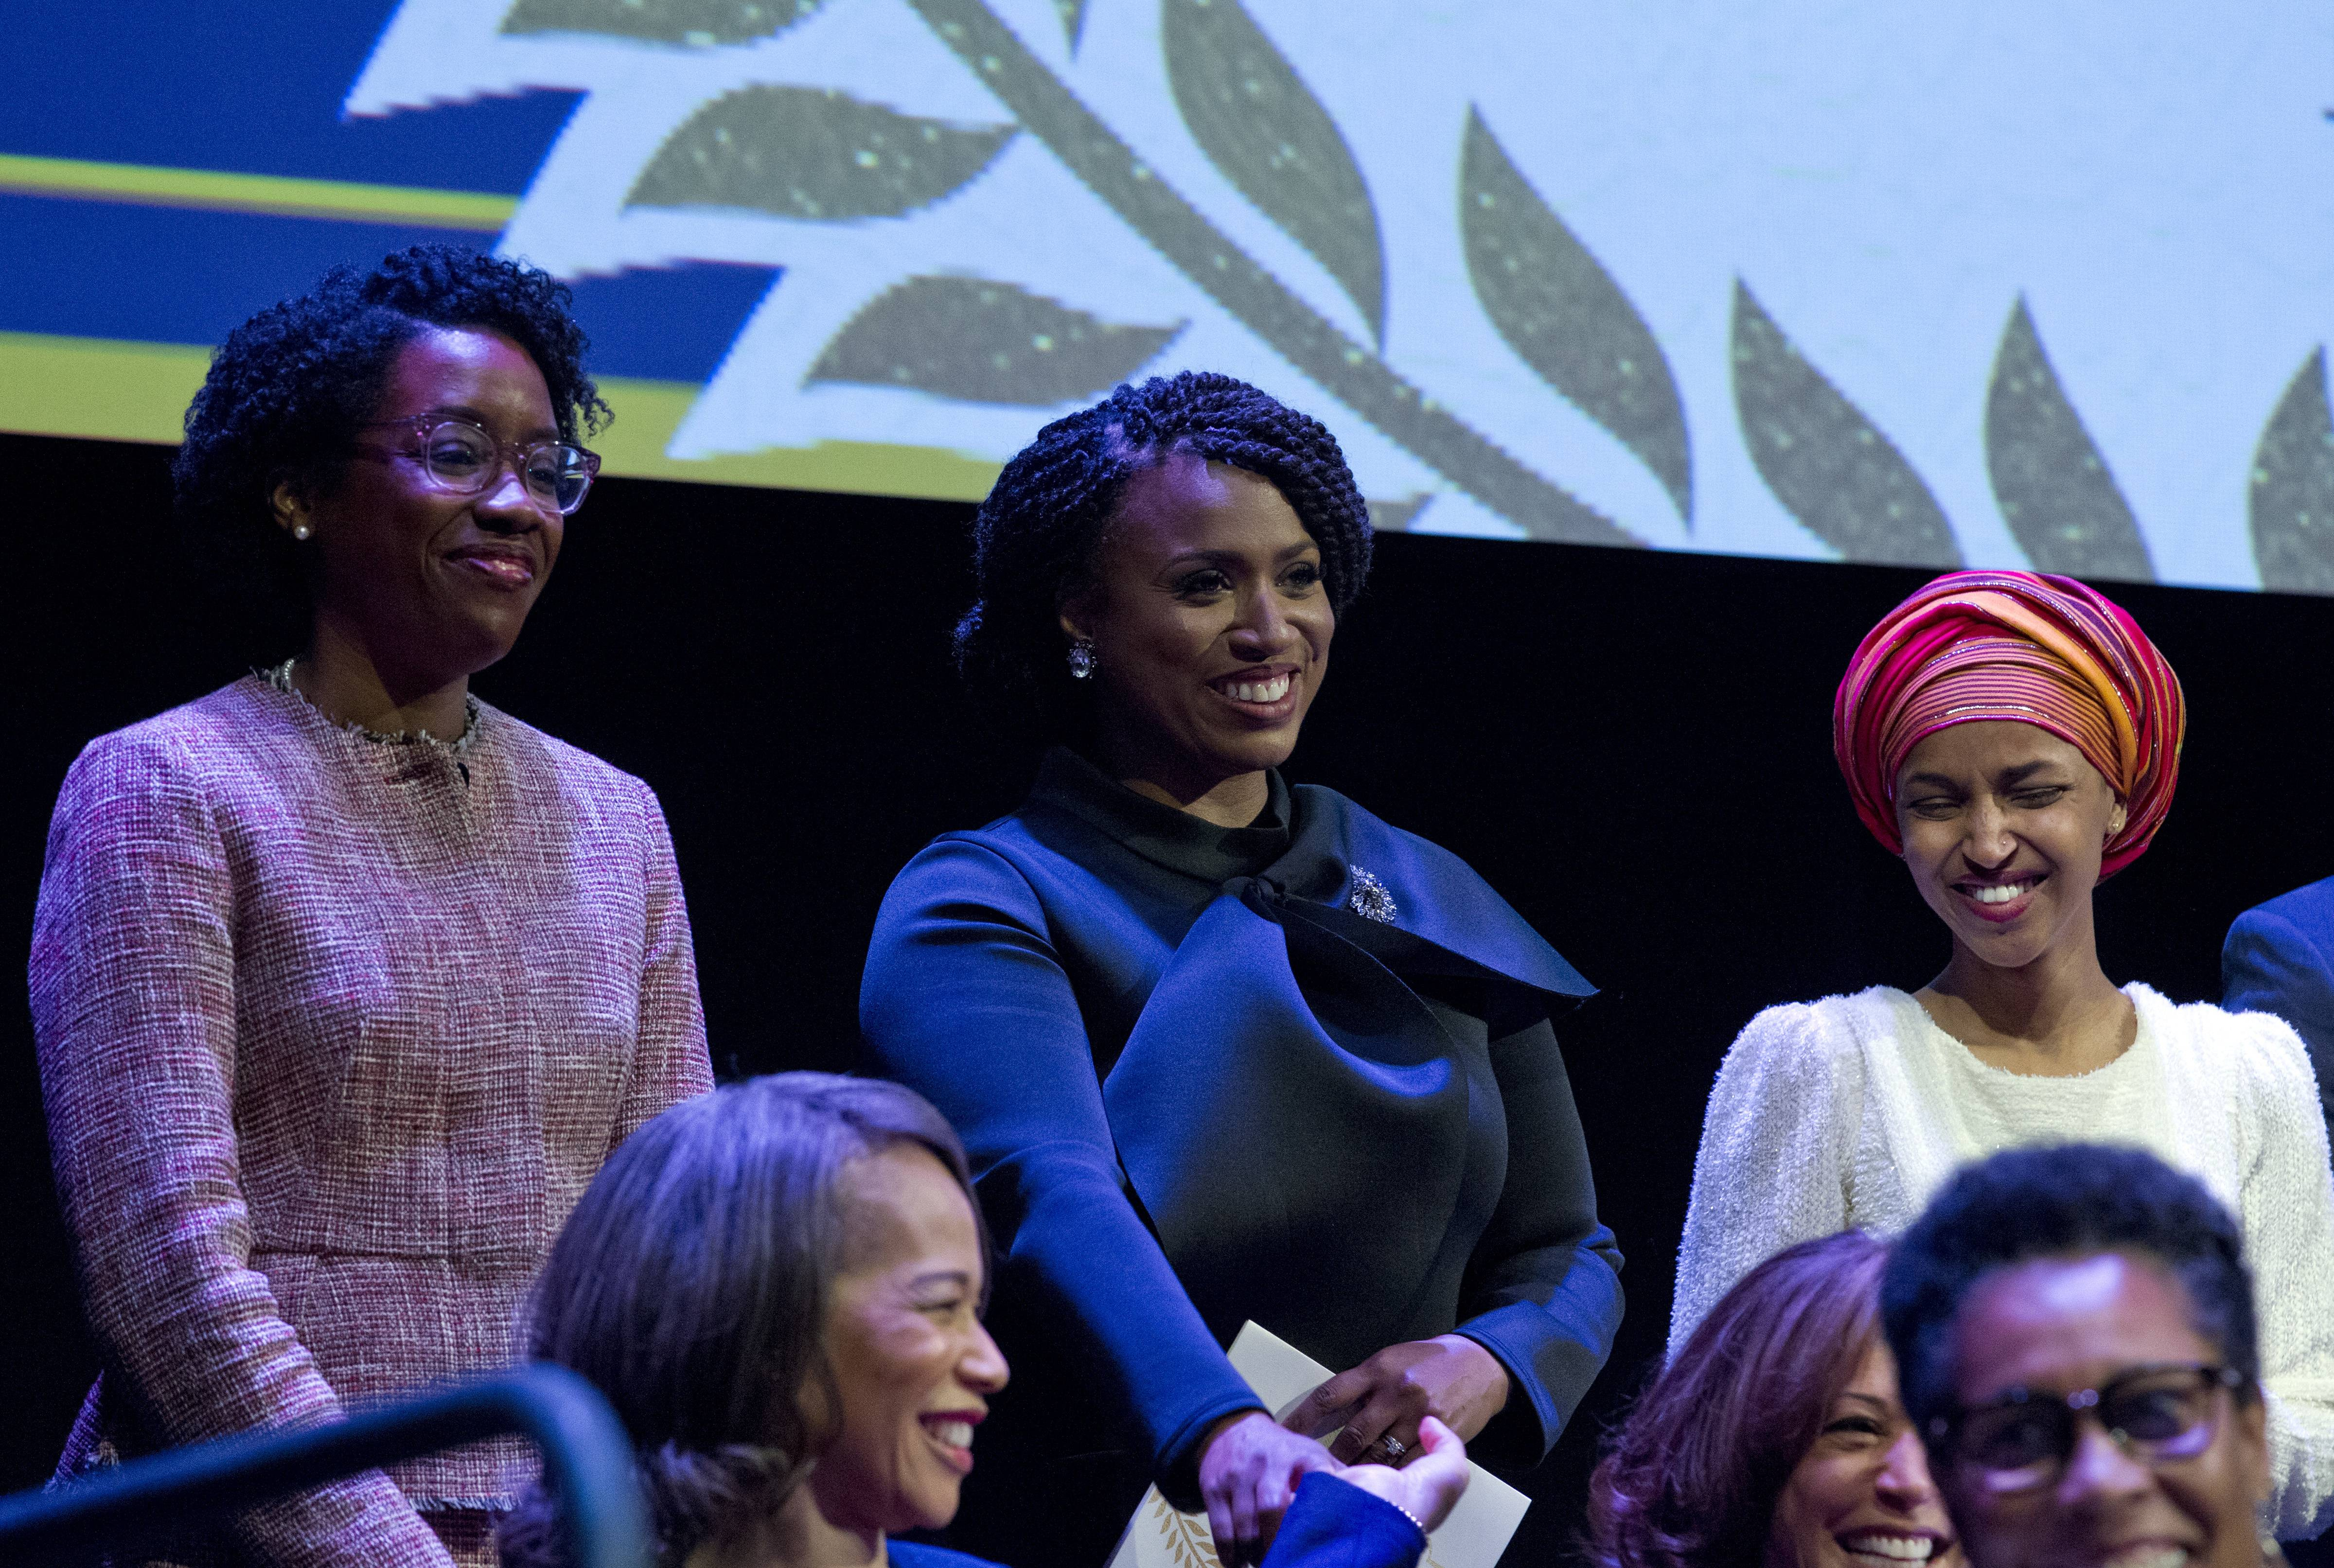 From left, Lauren Underwood, a Naperville Democrat; Ayanna Pressley, a Massachusetts Democrat; and Ilhan Omar, a Minnesota Democrat, gather Thursday during the swearing-in ceremony of Congressional Black Caucus members at The Warner Theatre in Washington.